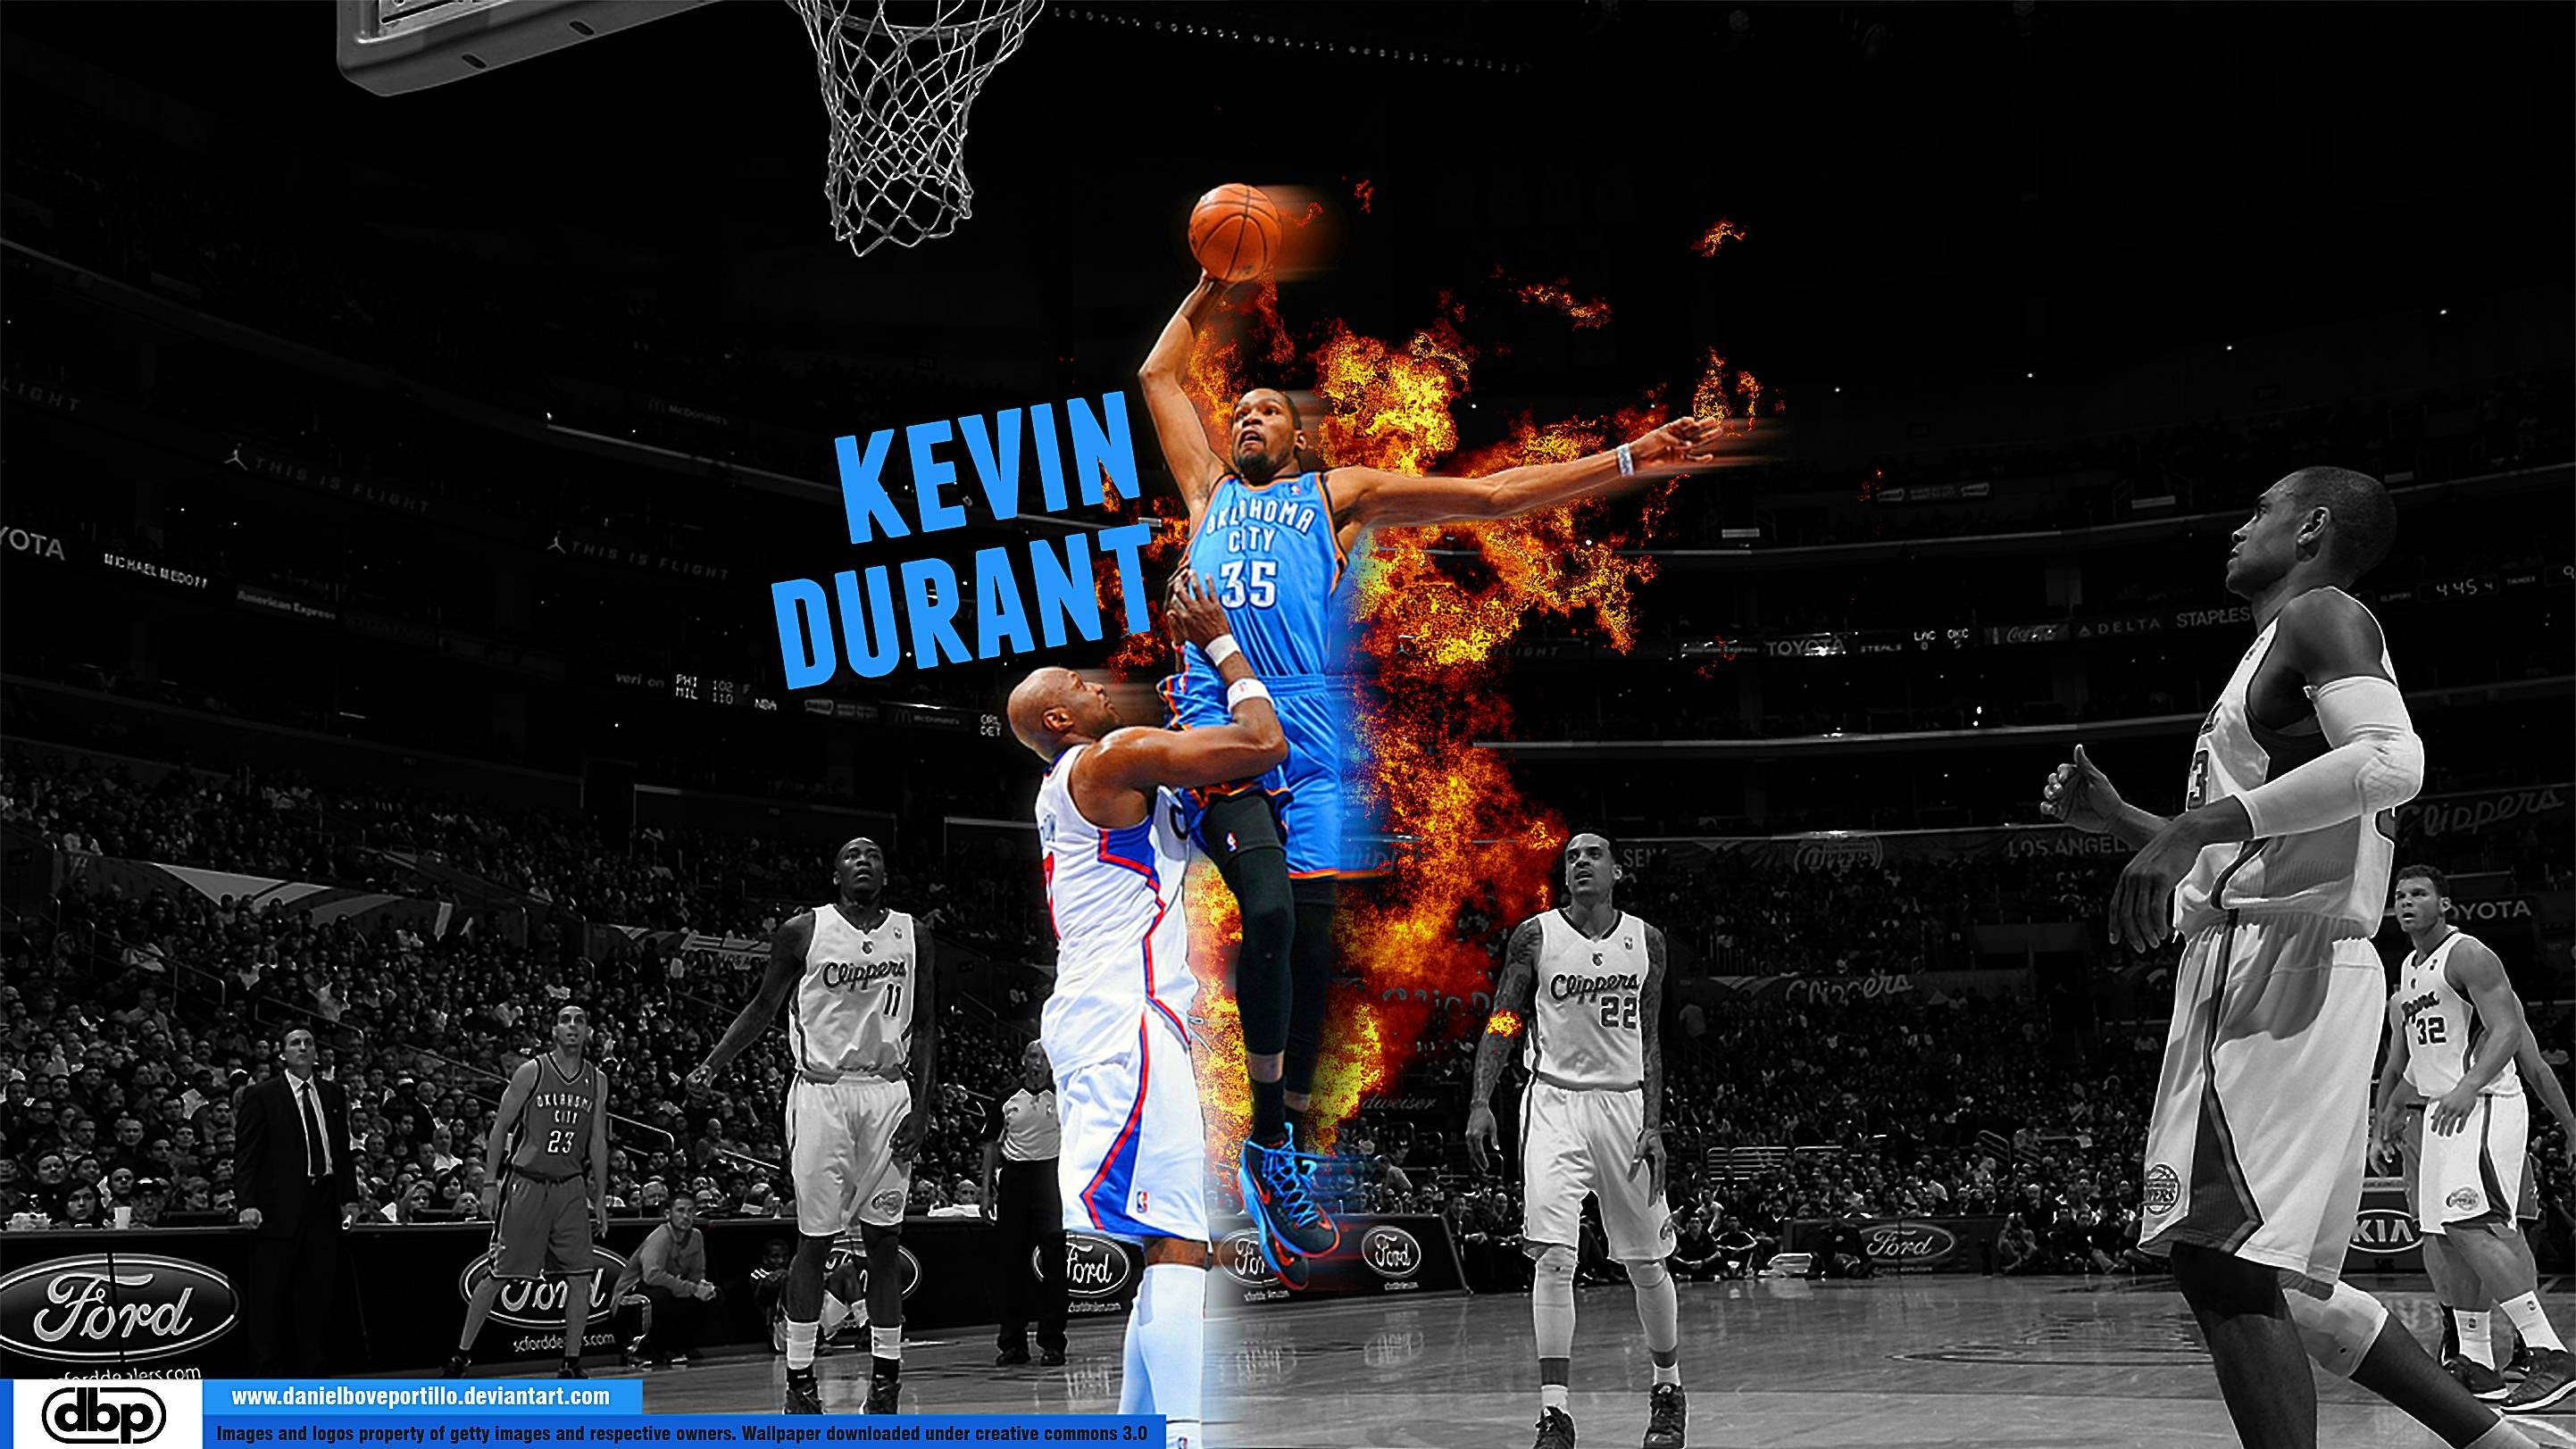 Basketball Kevin Durant Wallpapers: Kevin Durant Wallpapers HD 2015